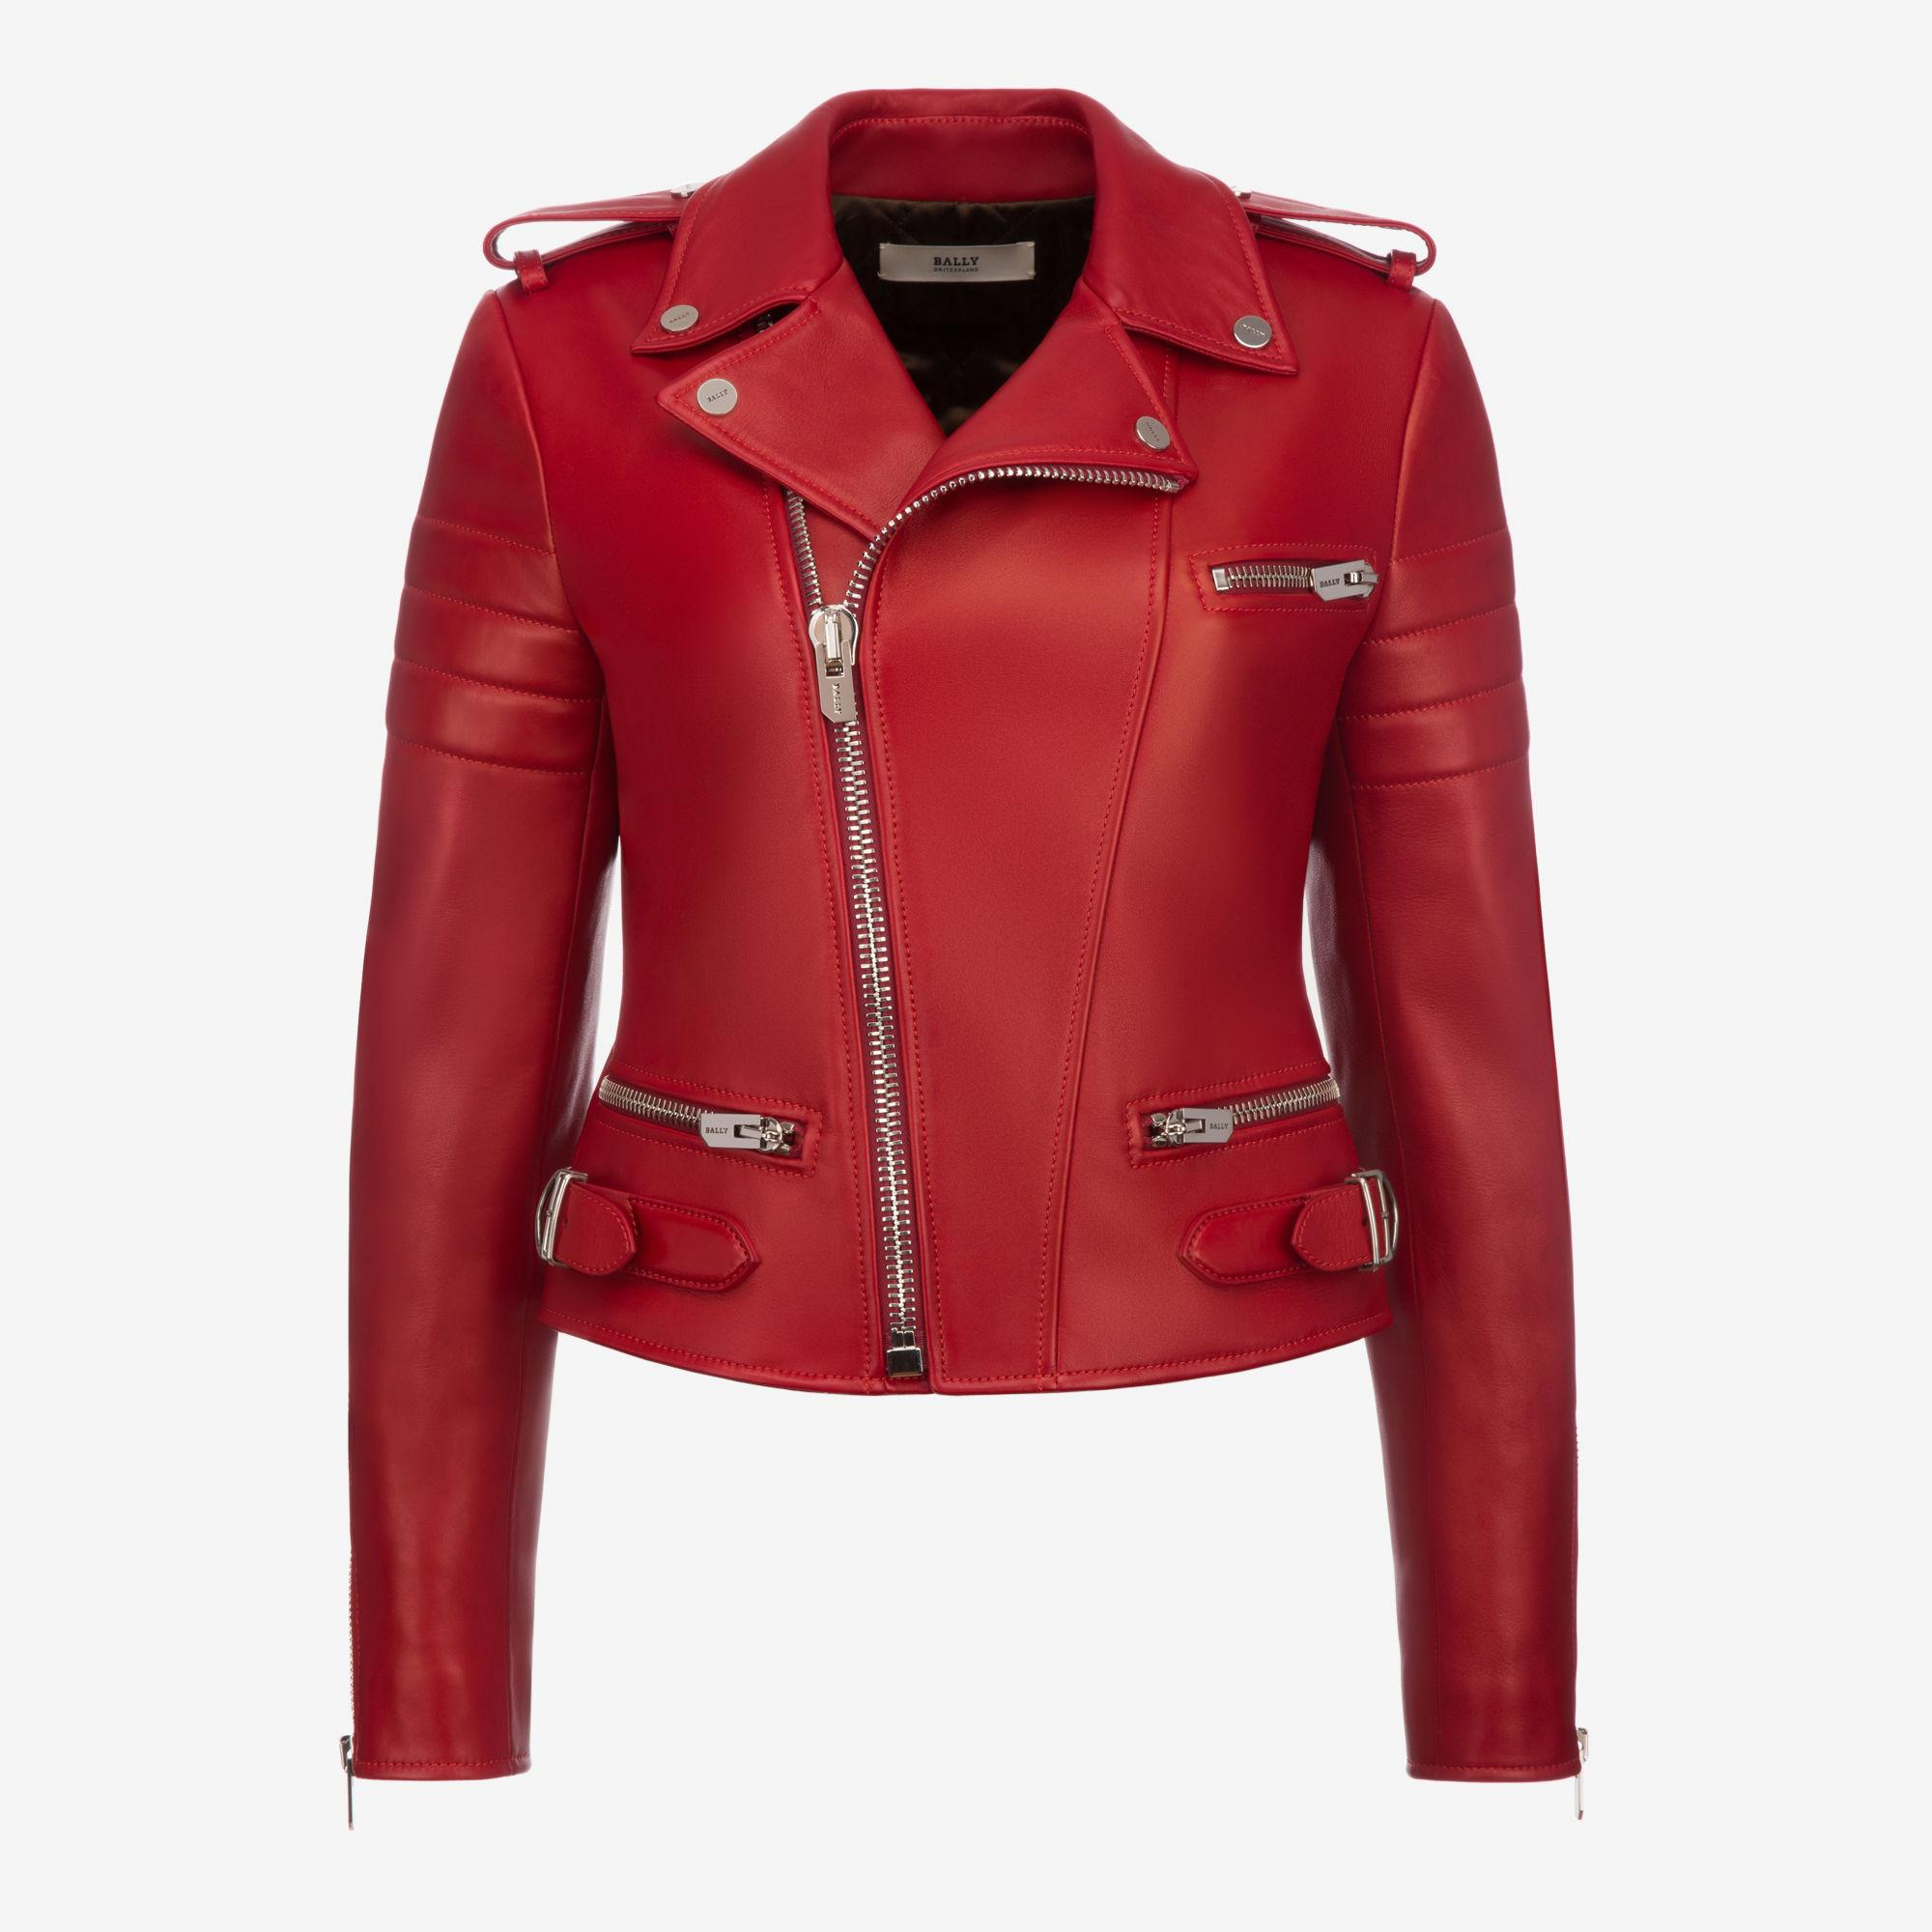 Lyst - Bally Leather Biker Jacket In Pink